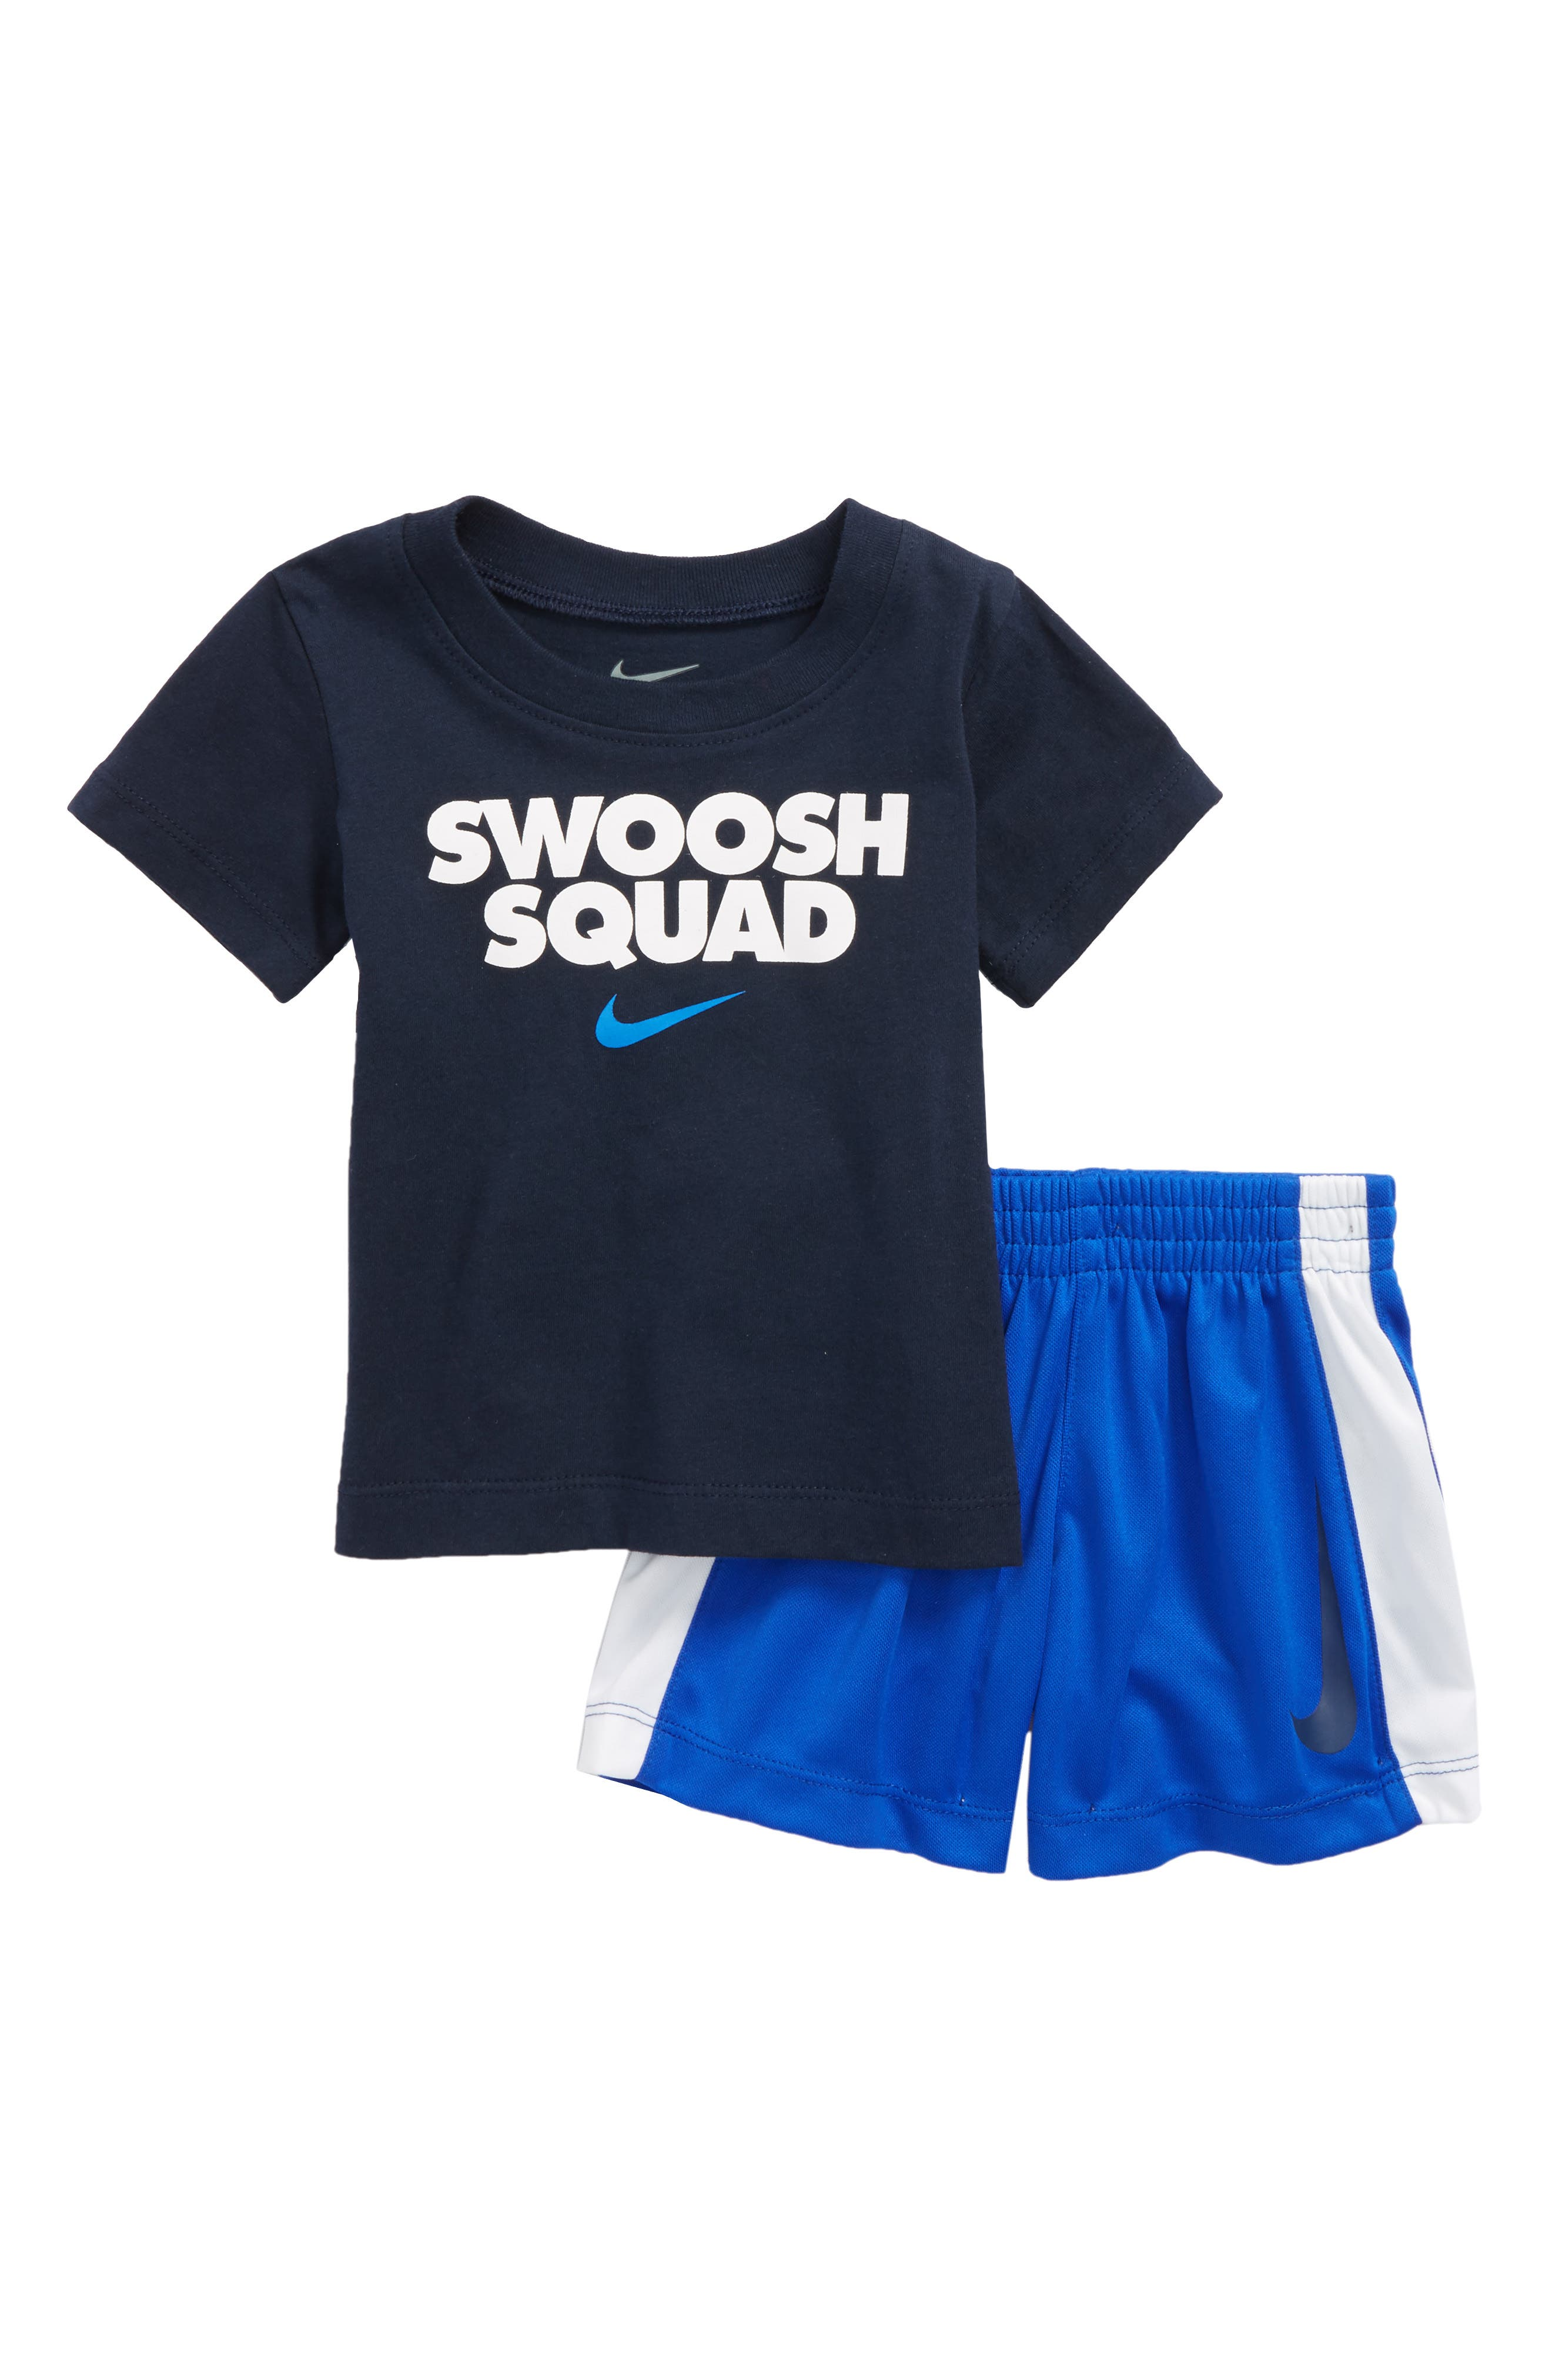 Nike Swoosh Squad T-Shirt & Shorts Set (Baby Boys)